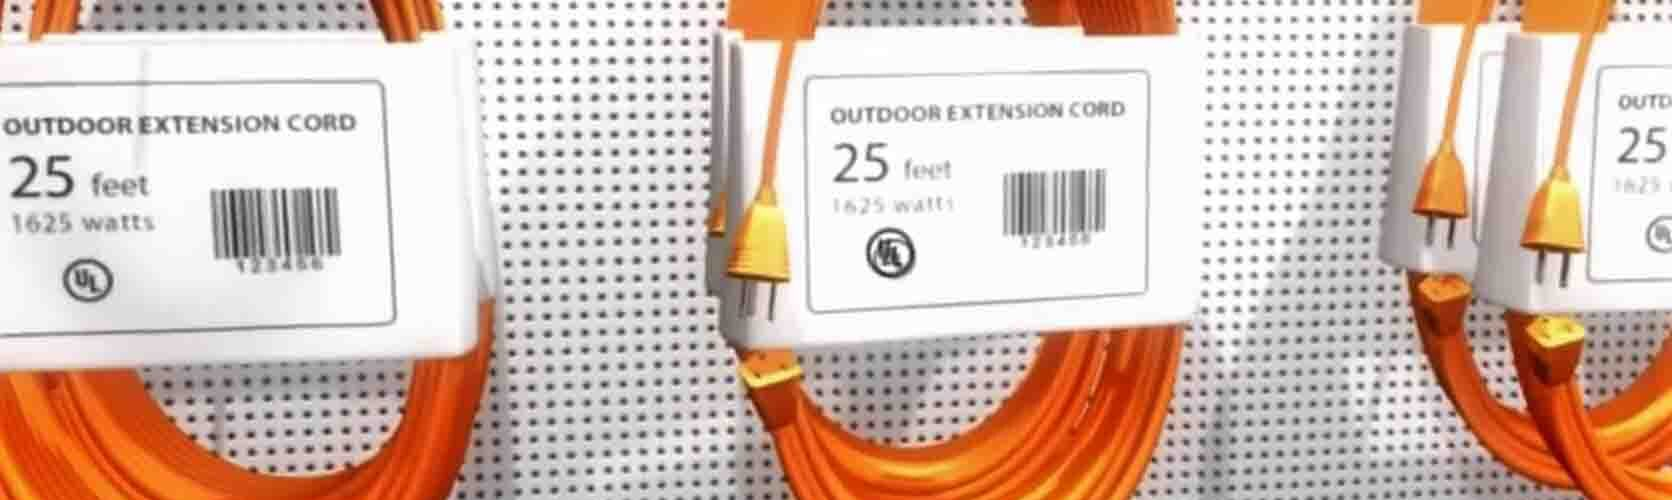 Best electric grill extension cord